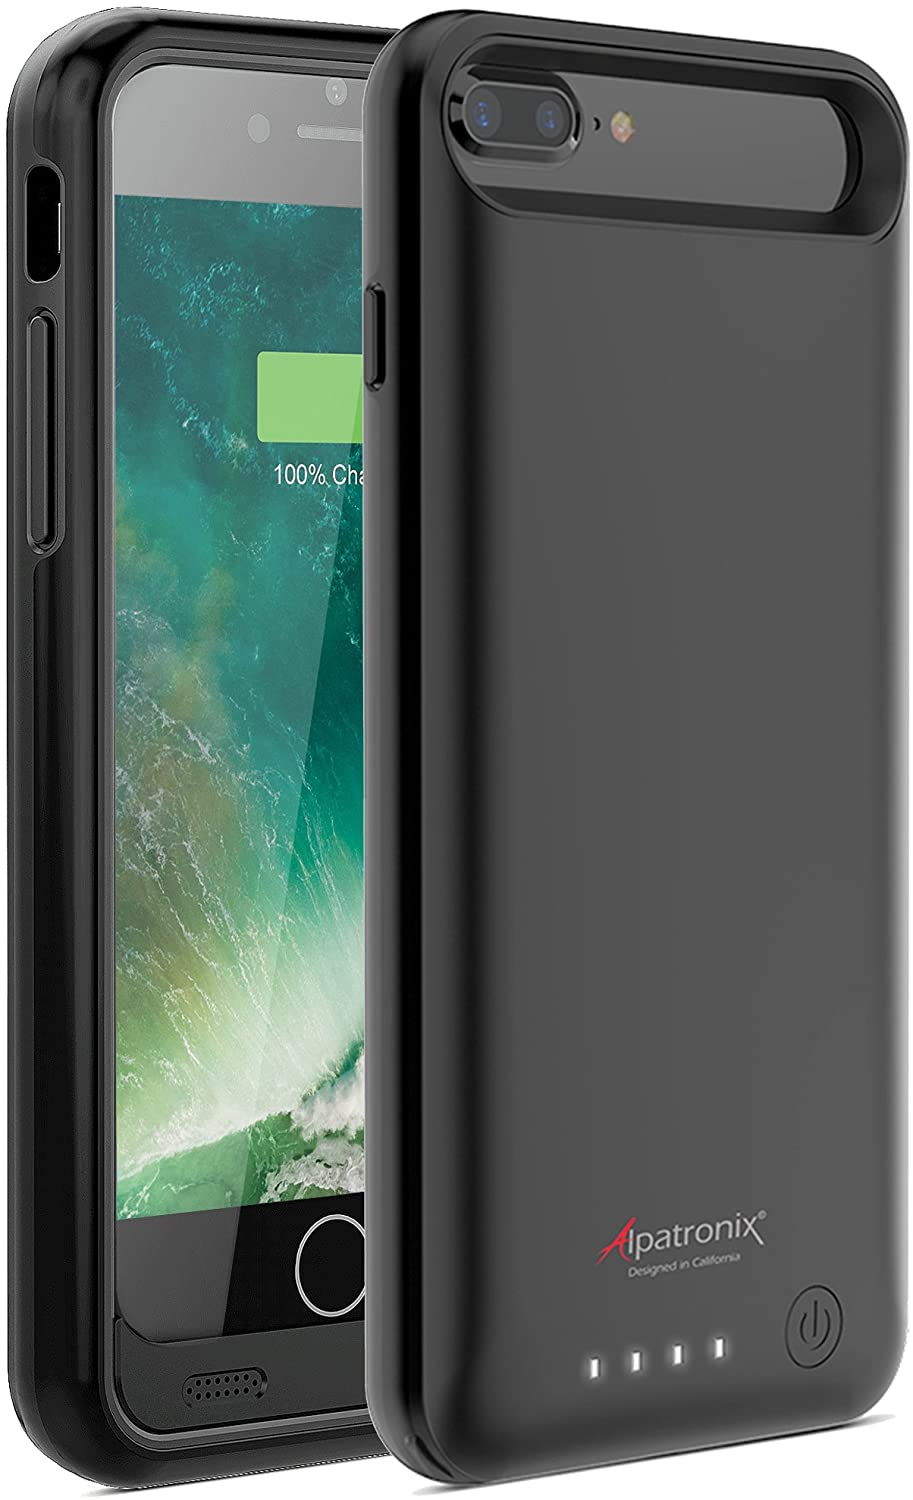 Alpatronix iPhone 8 Plus/7 Plus Battery Case, Slim Portable Protective Extended Charger Cover Compatible with iPhone 8 Plus & iPhone 7 Plus (5.5 inch) BX170plus - (Black)